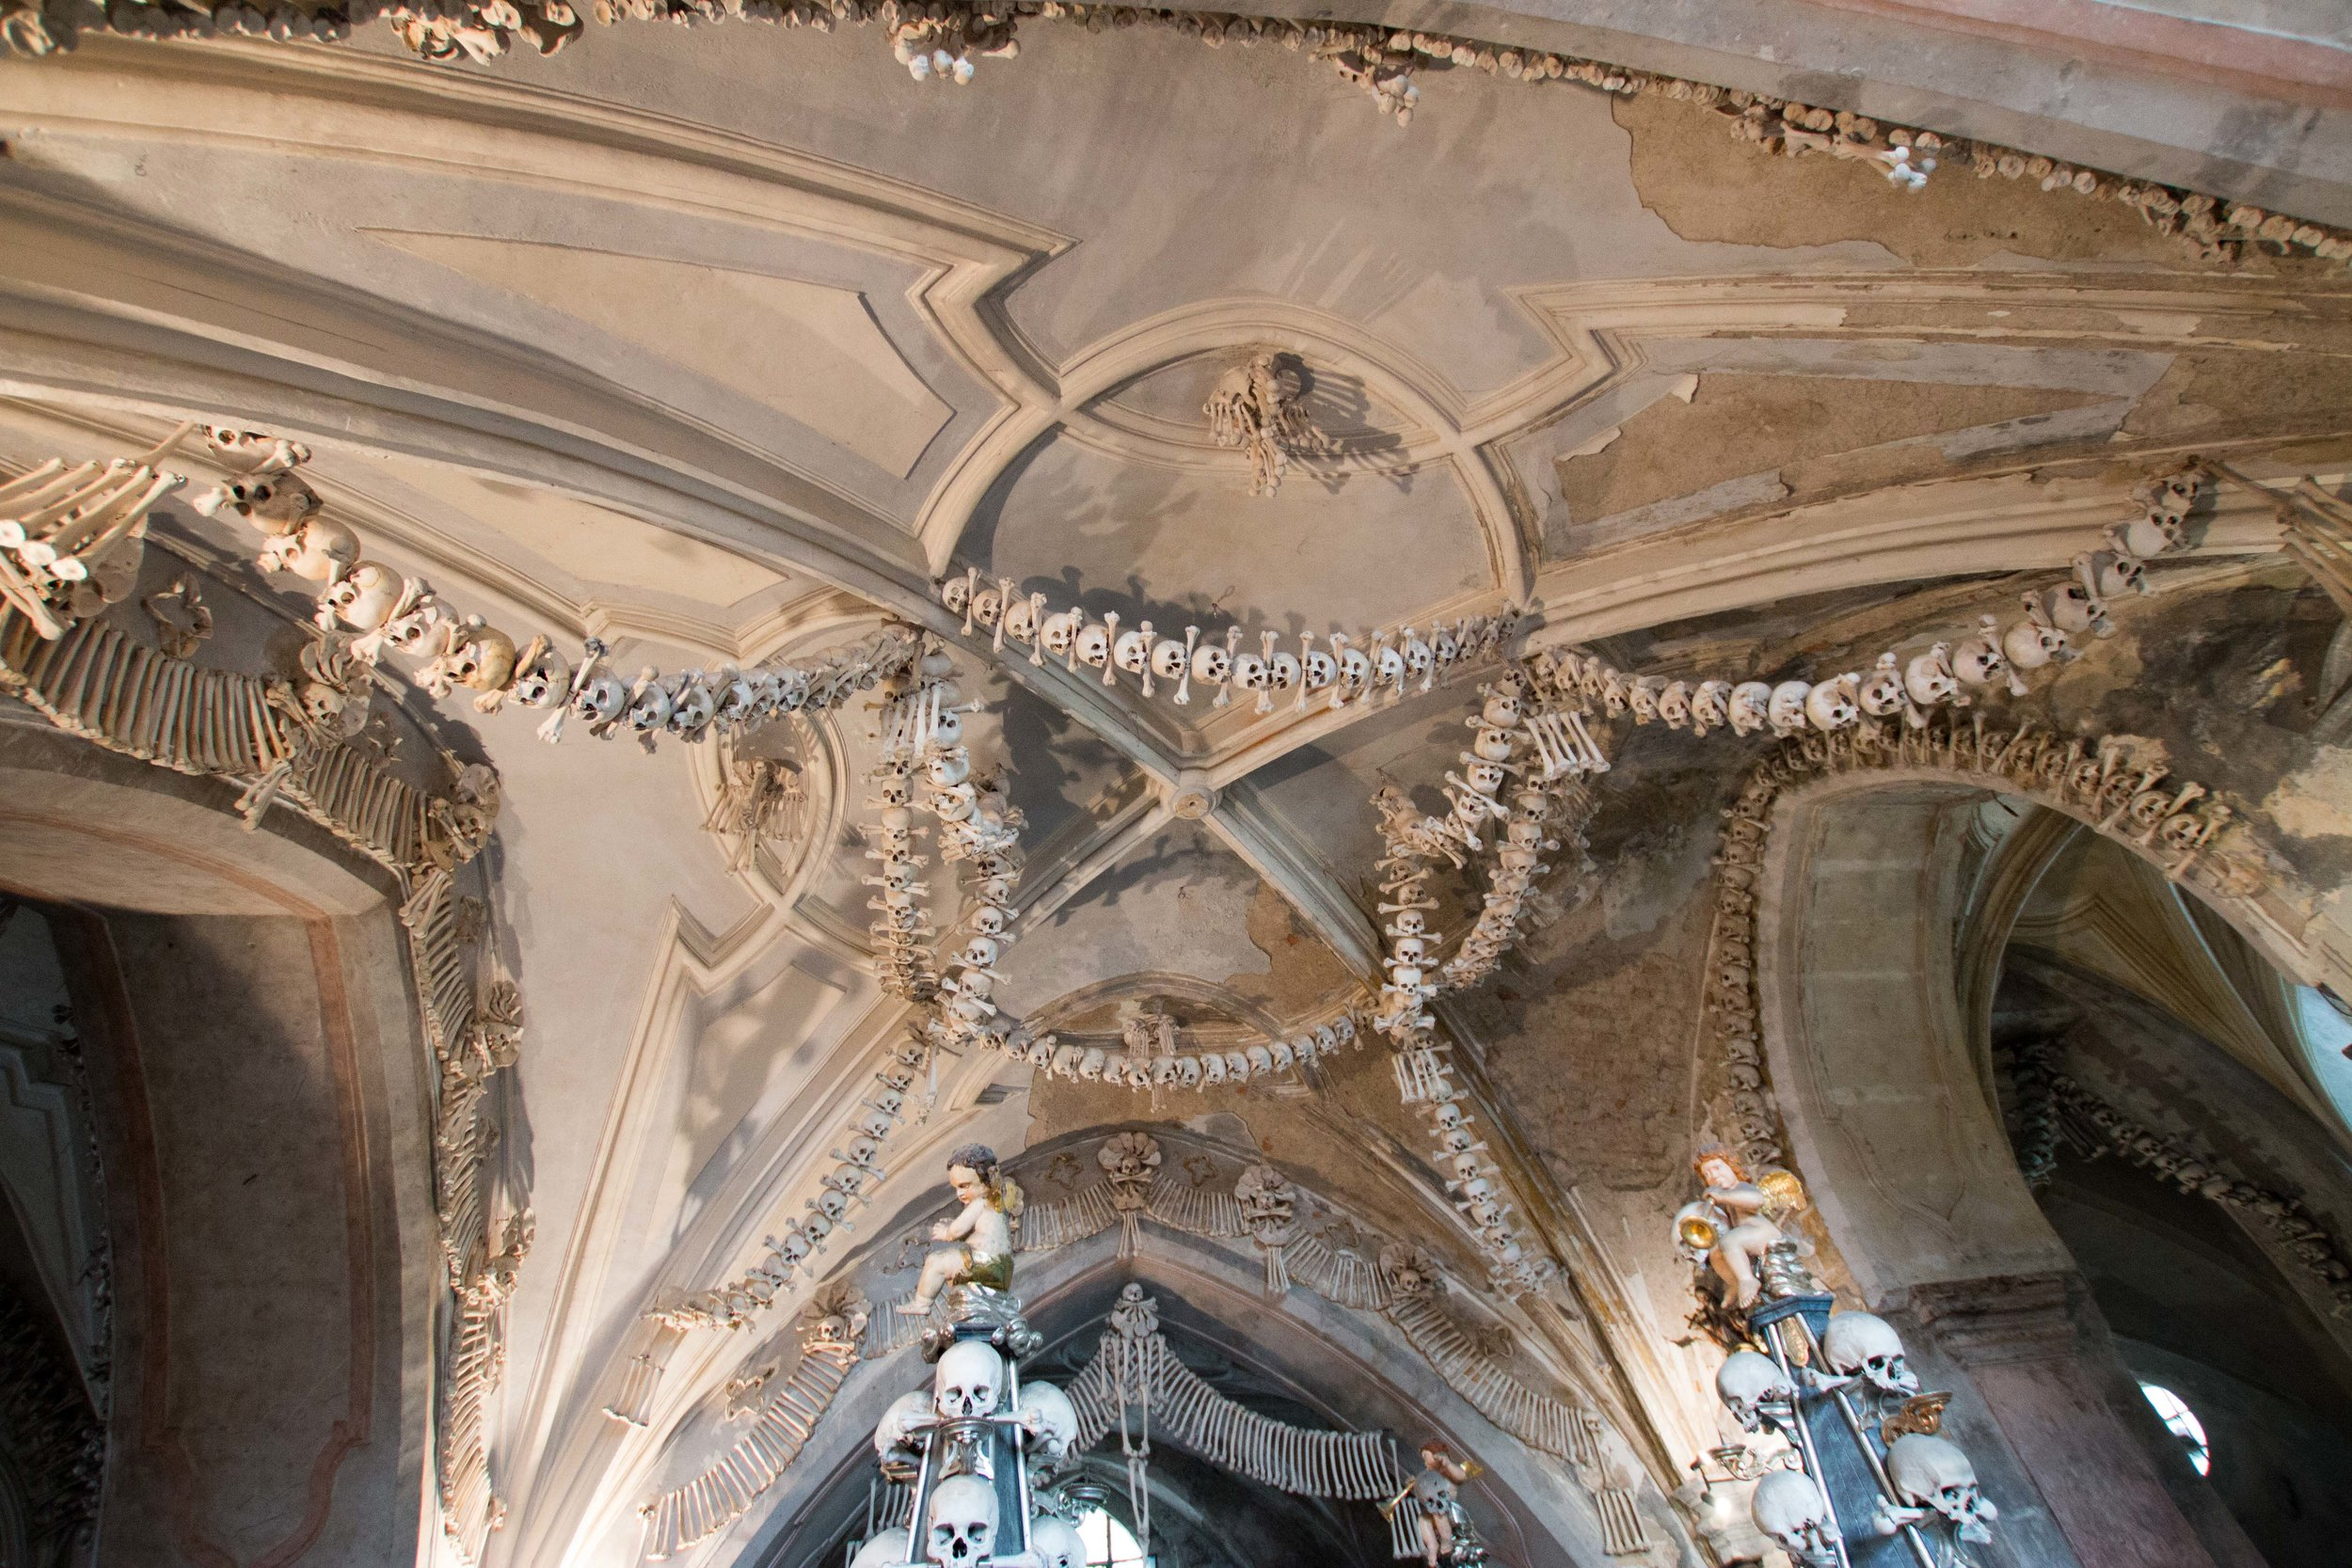 garlands made from skulls hang from the cieling